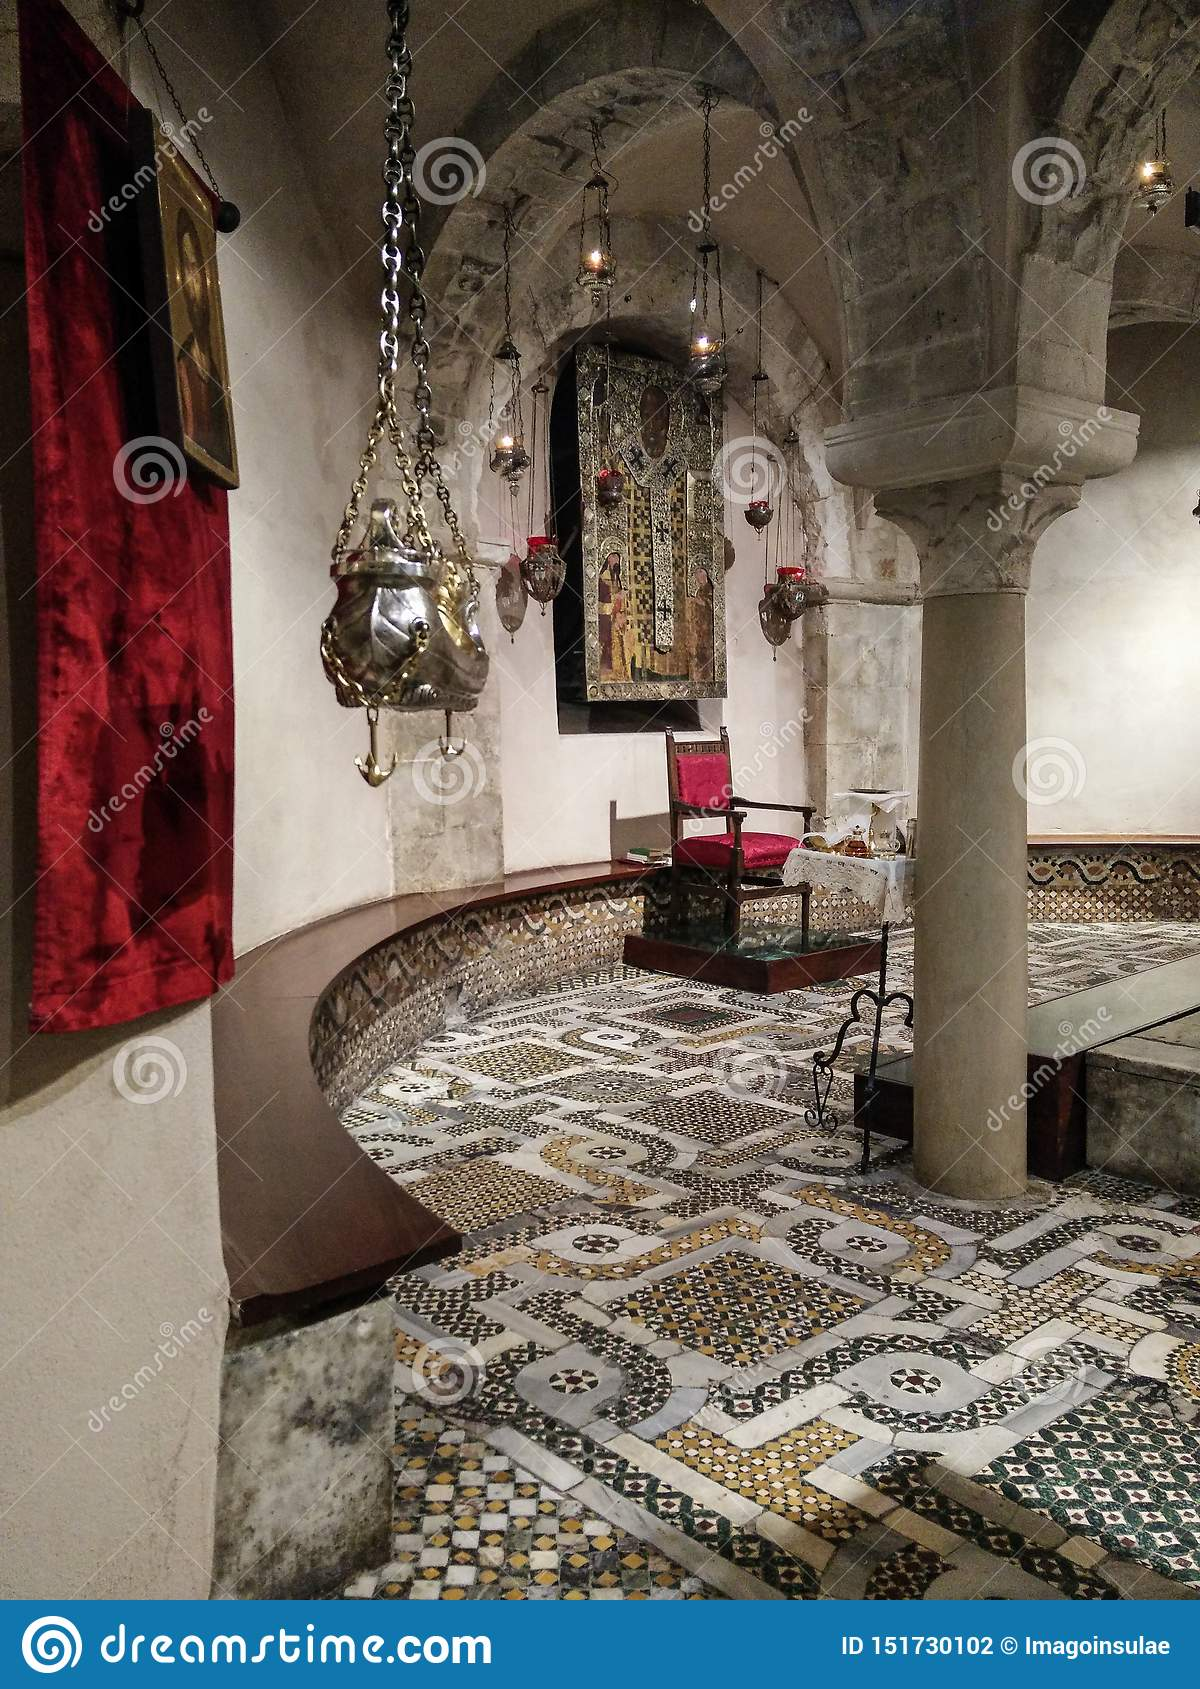 Italy. Bari. Basilica of San Nicola. Glimpse of the Crypt where the venerated relics of the Saint are kept